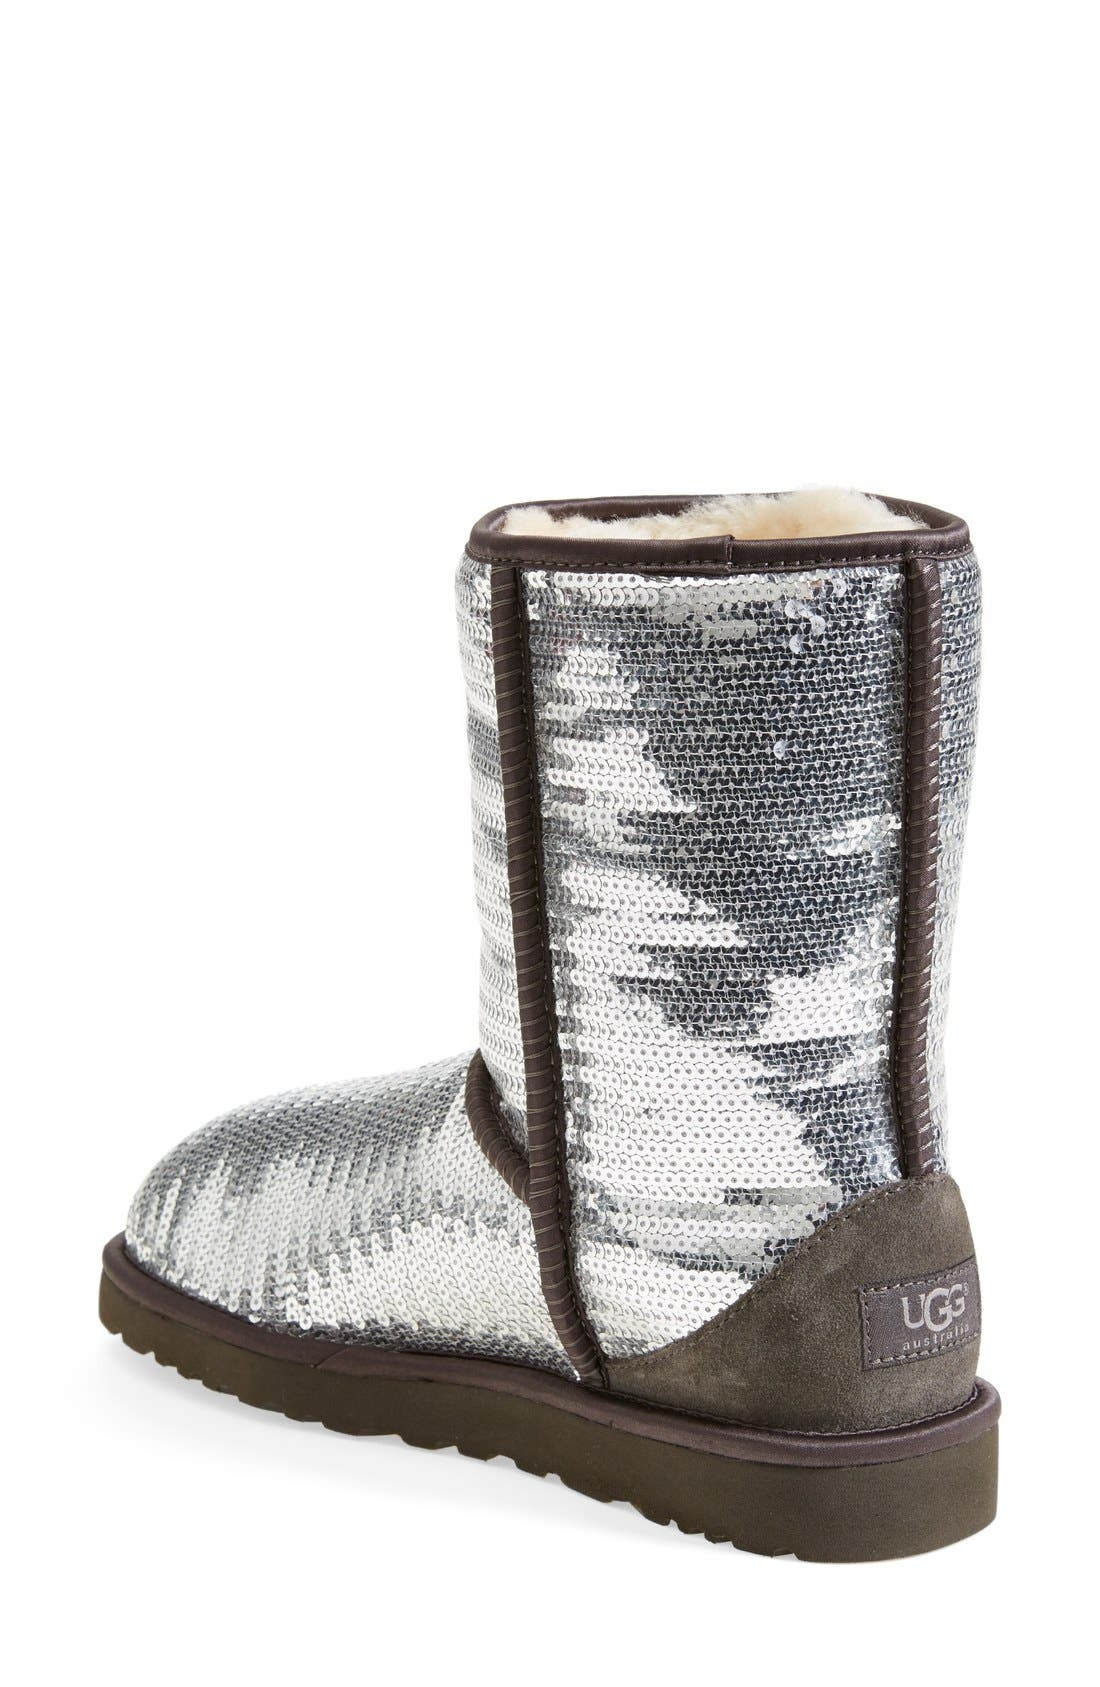 Australia 'Classic Short Sparkles' Boot,                             Alternate thumbnail 2, color,                             010